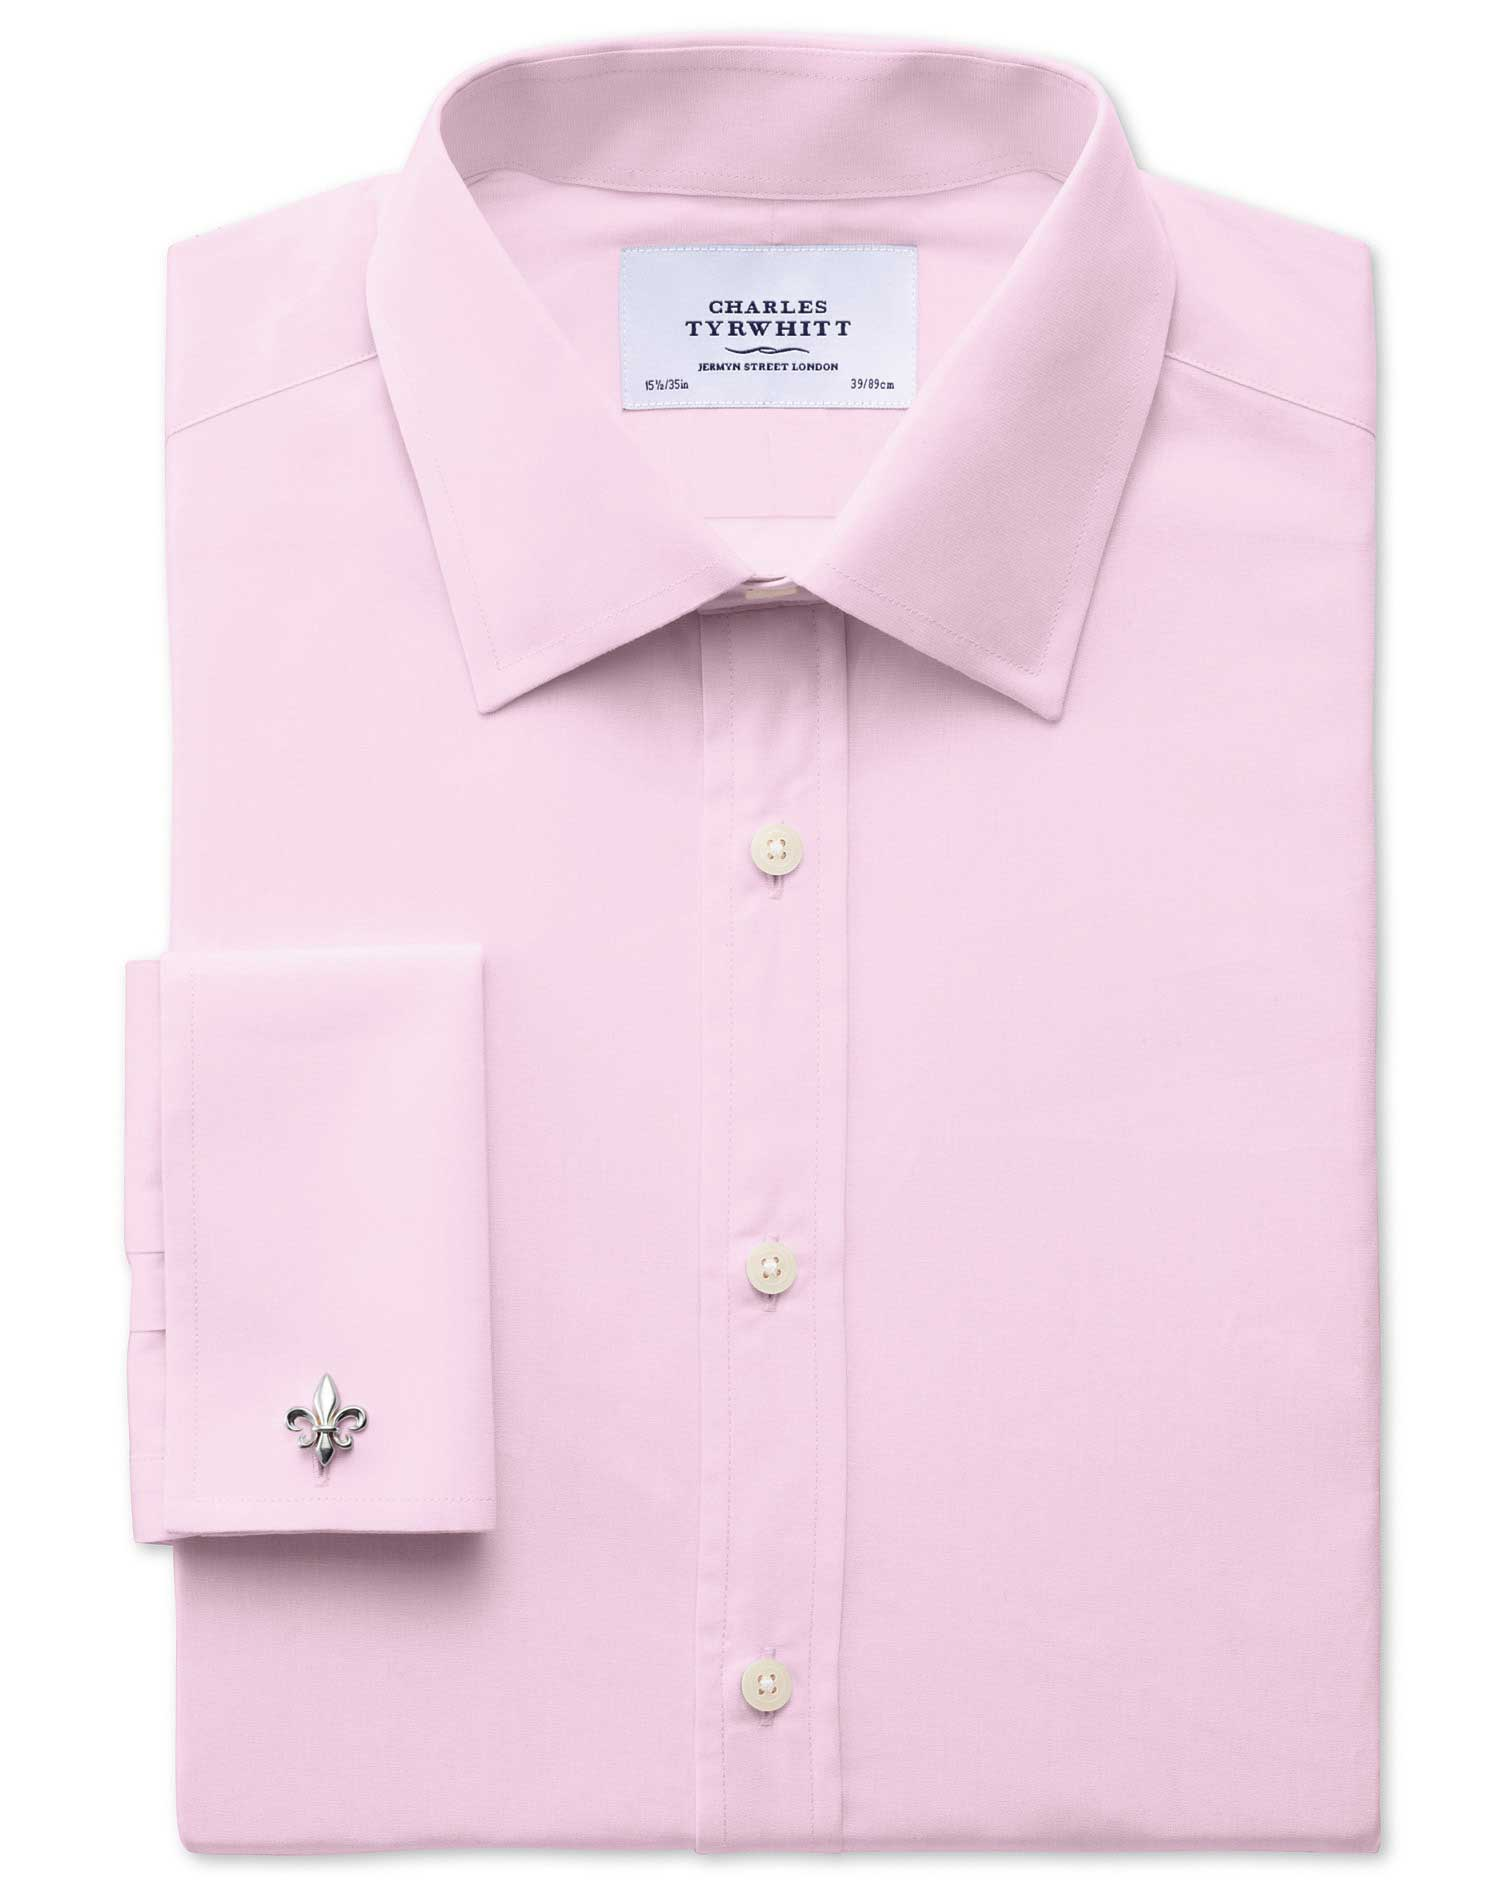 Extra Slim Fit End-On-End Pink Cotton Formal Shirt Double Cuff Size 14.5/33 by Charles Tyrwhitt